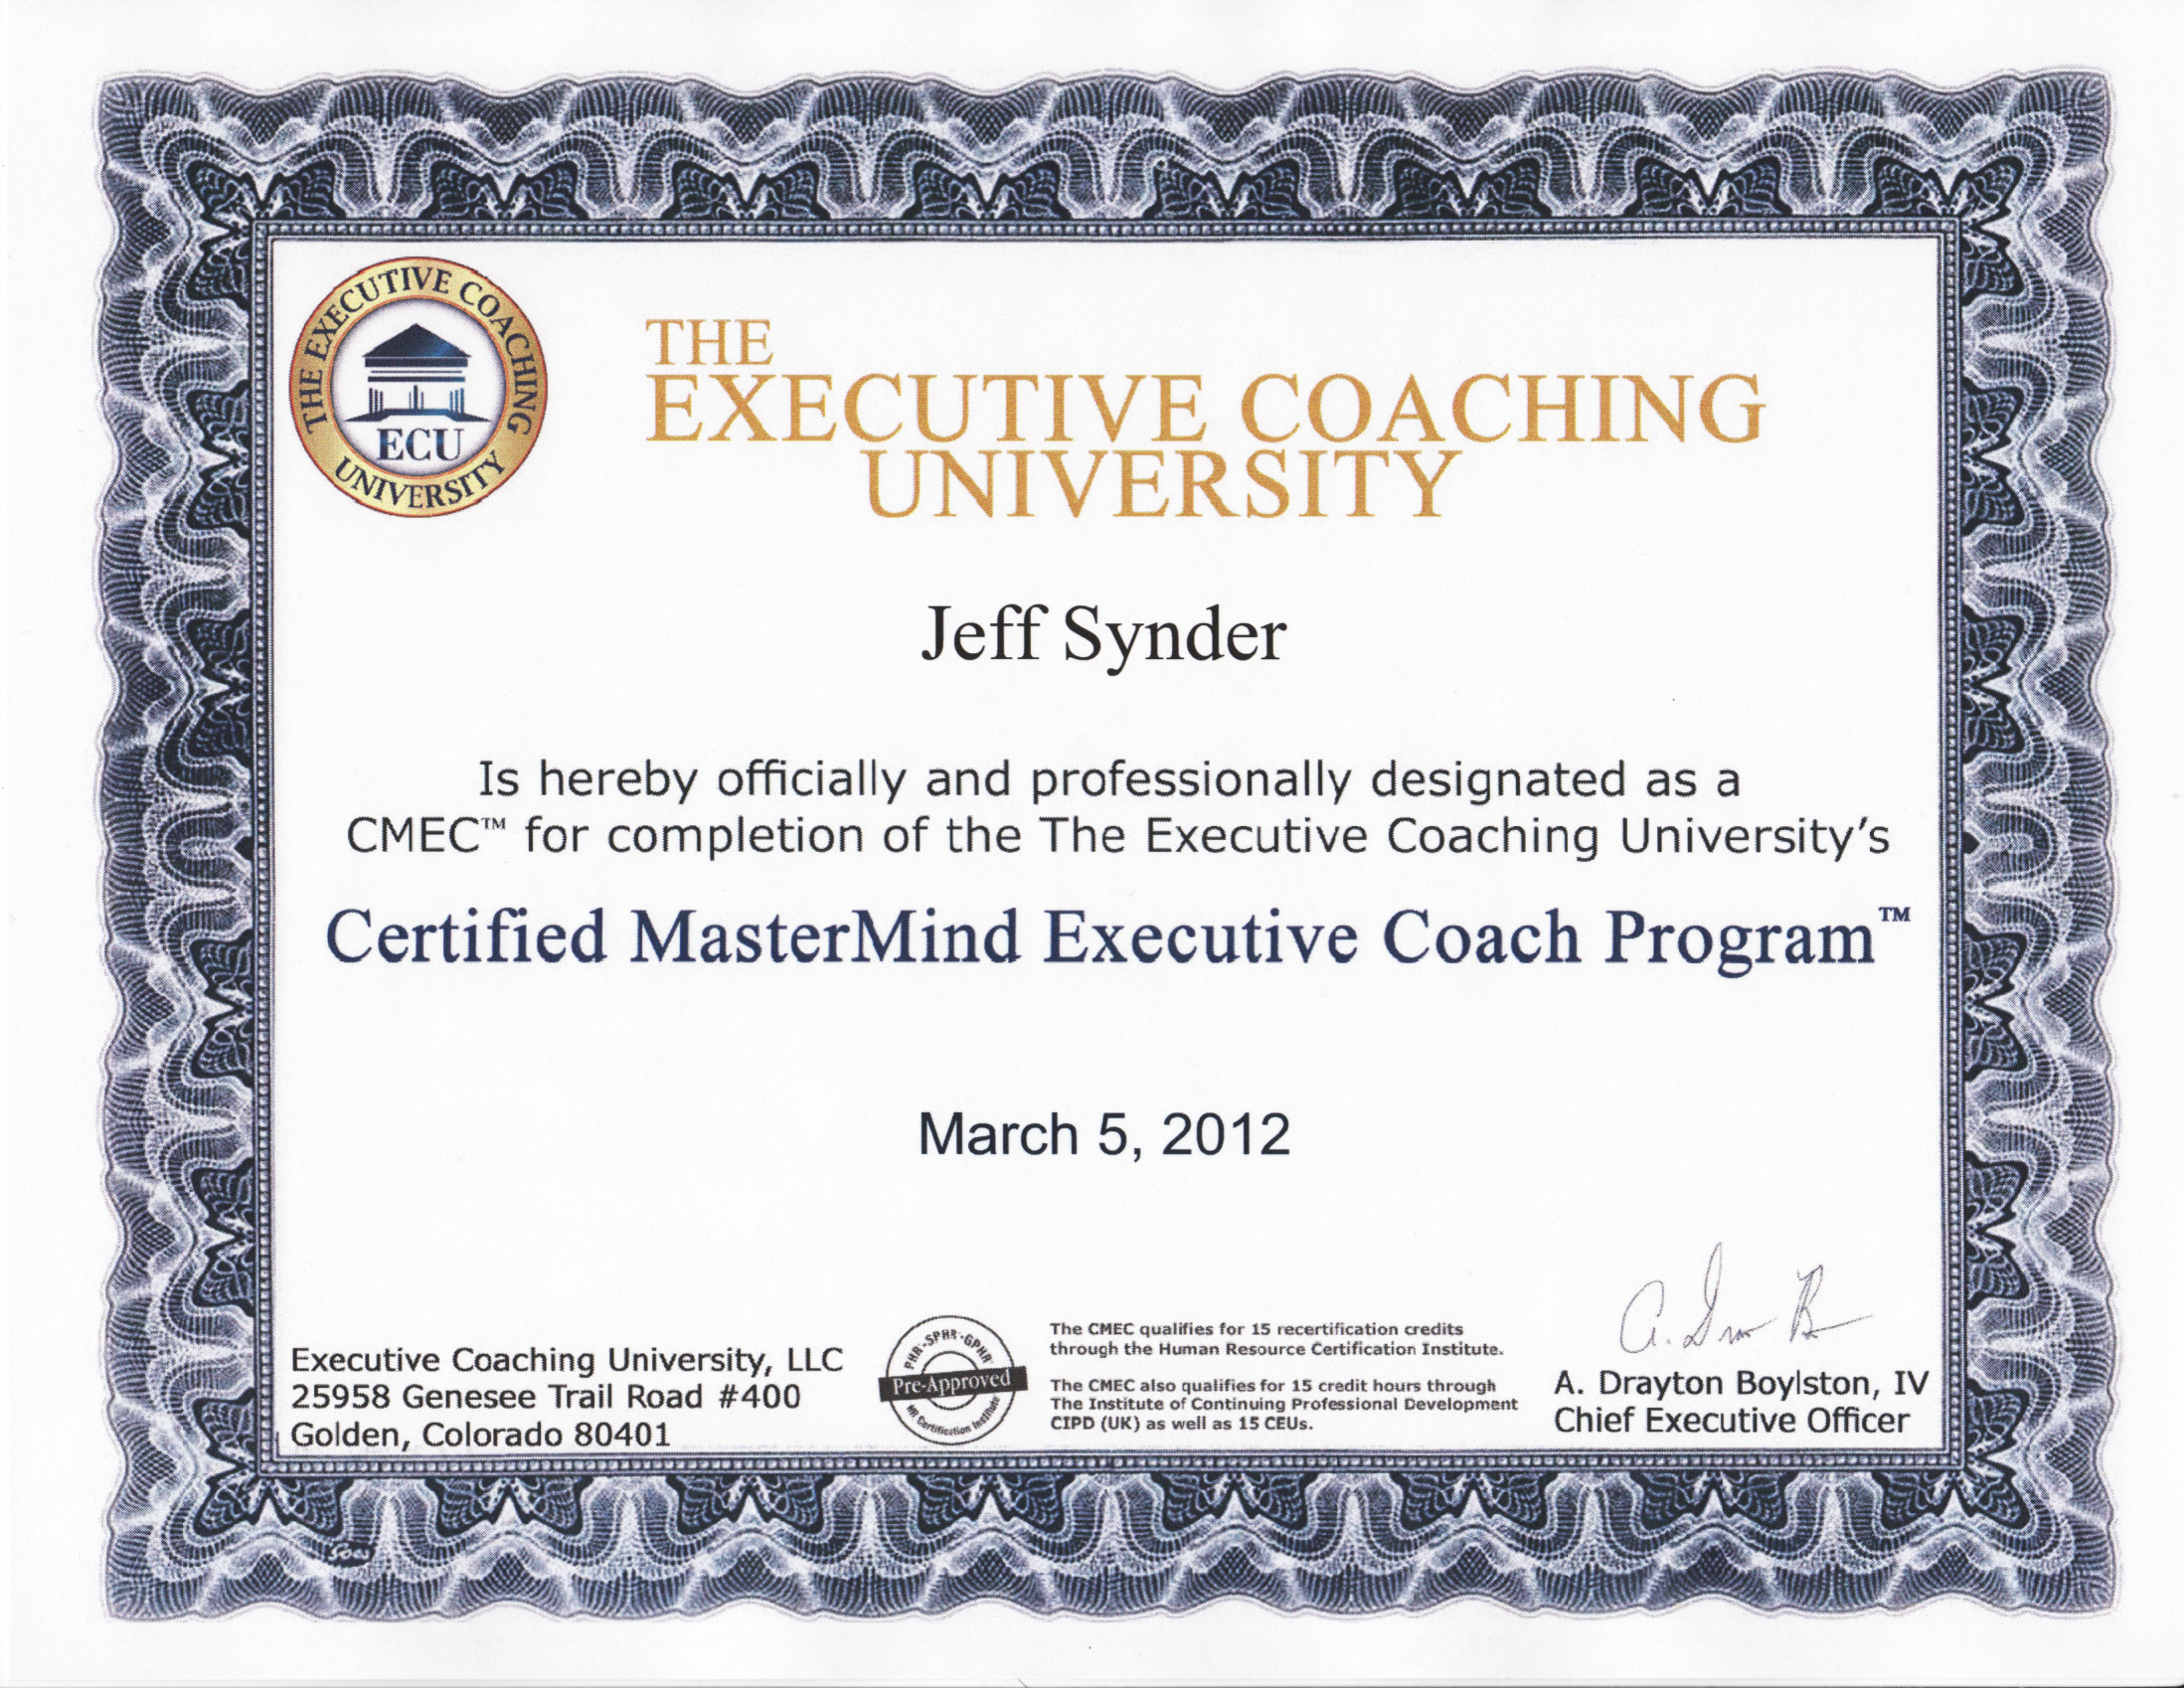 jeff-snyder-certified-mastermind-executive-coach